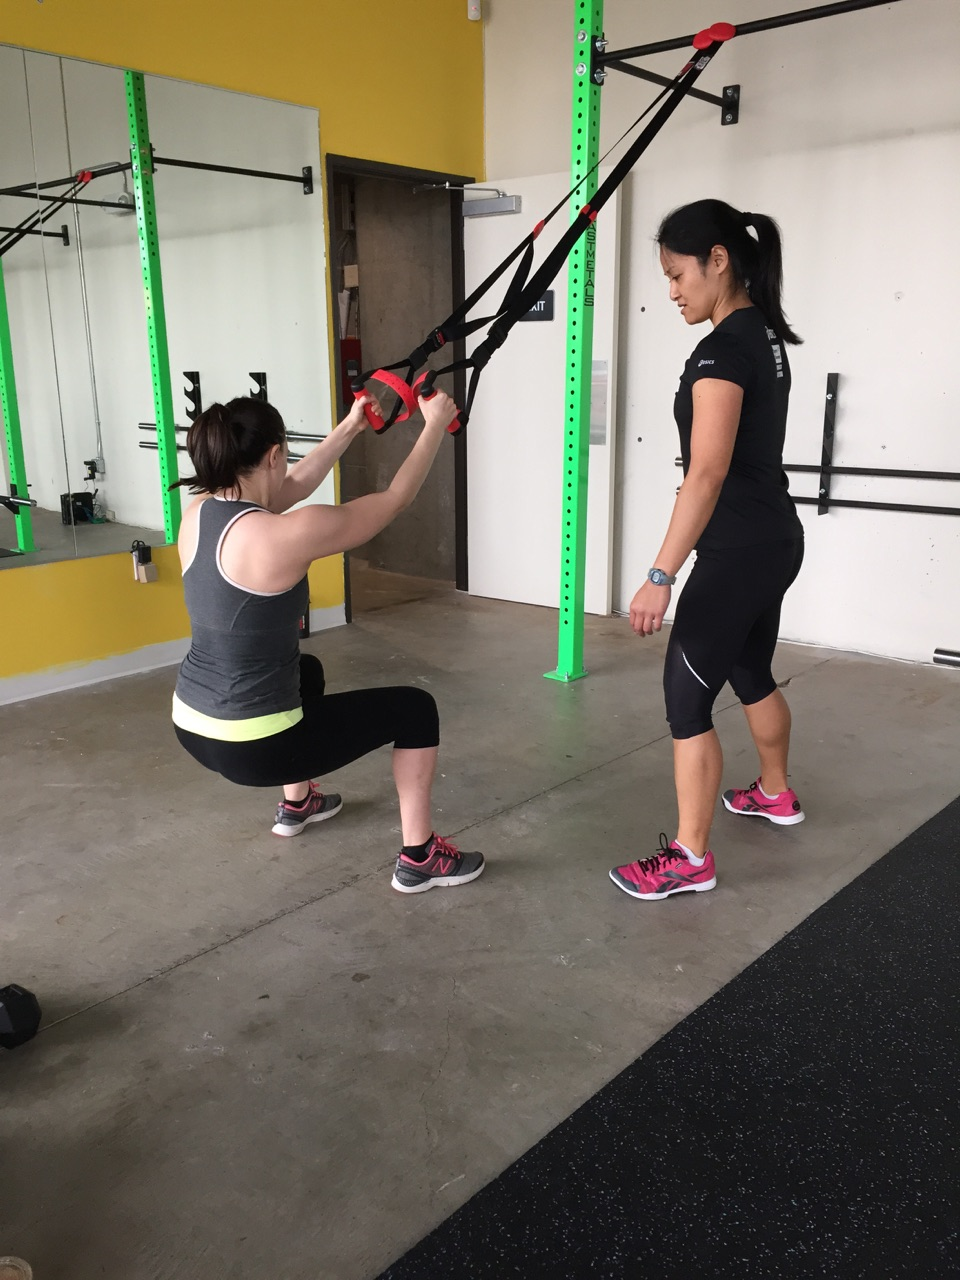 Working on TRX squats with my client.